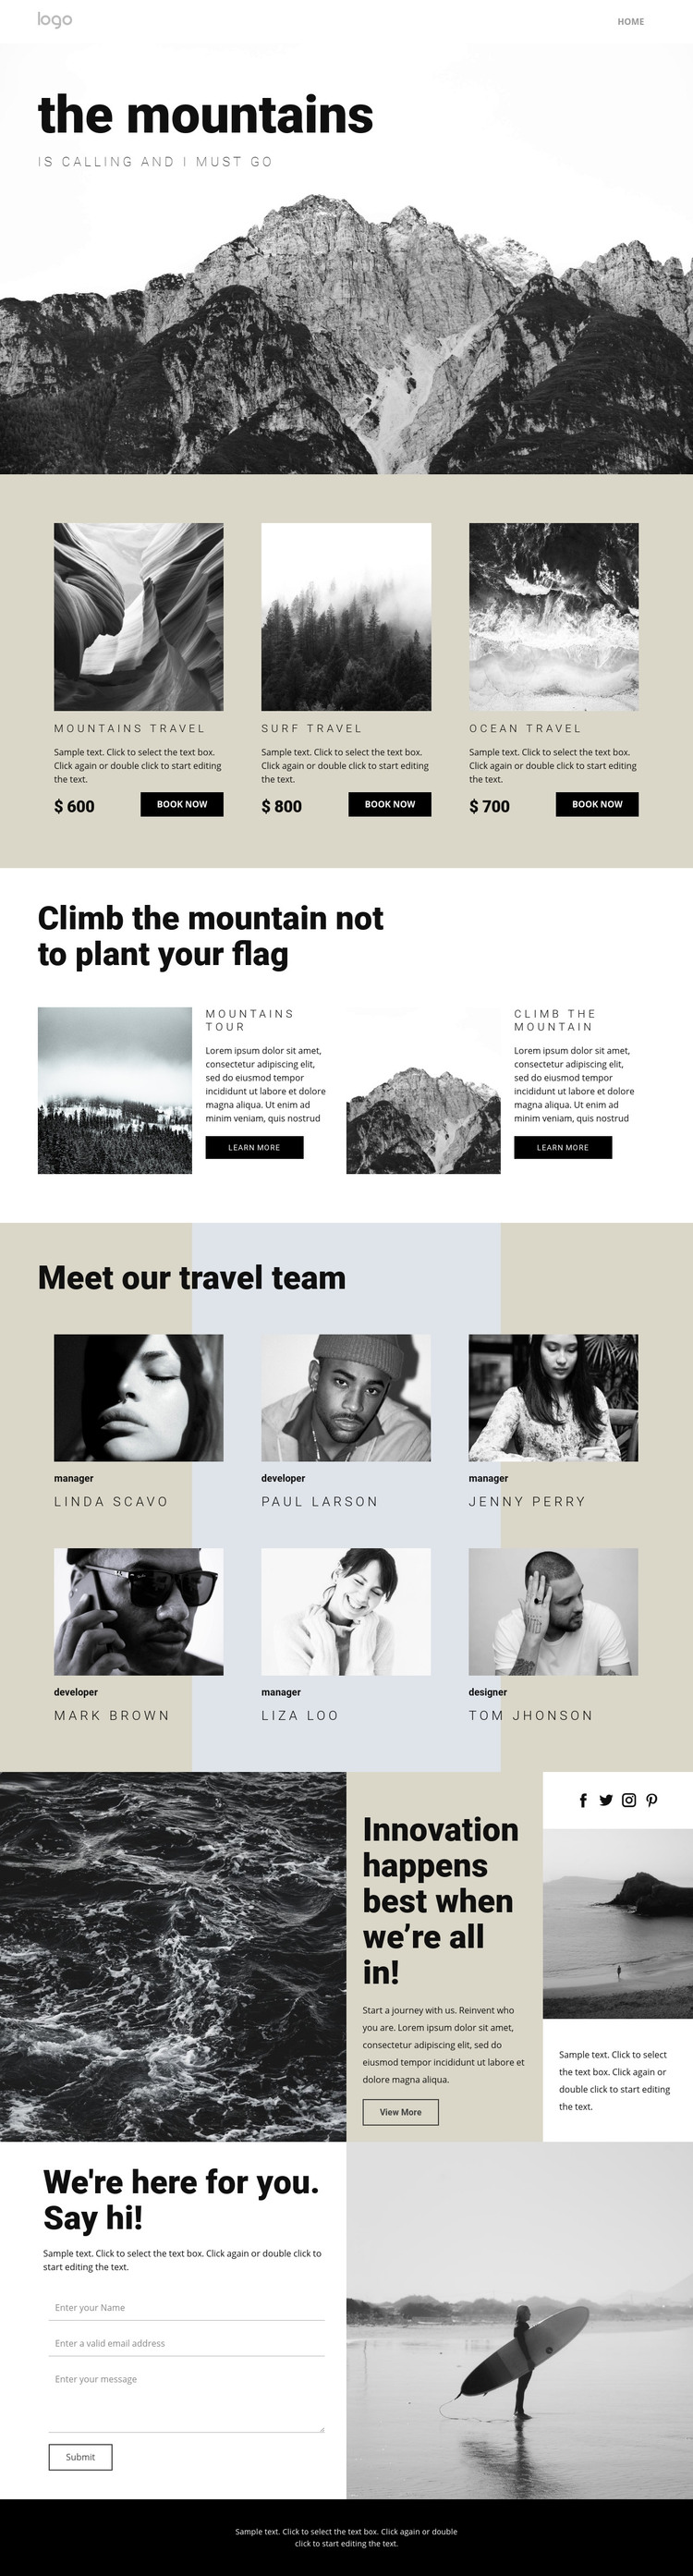 Agency for people who travel Homepage Design